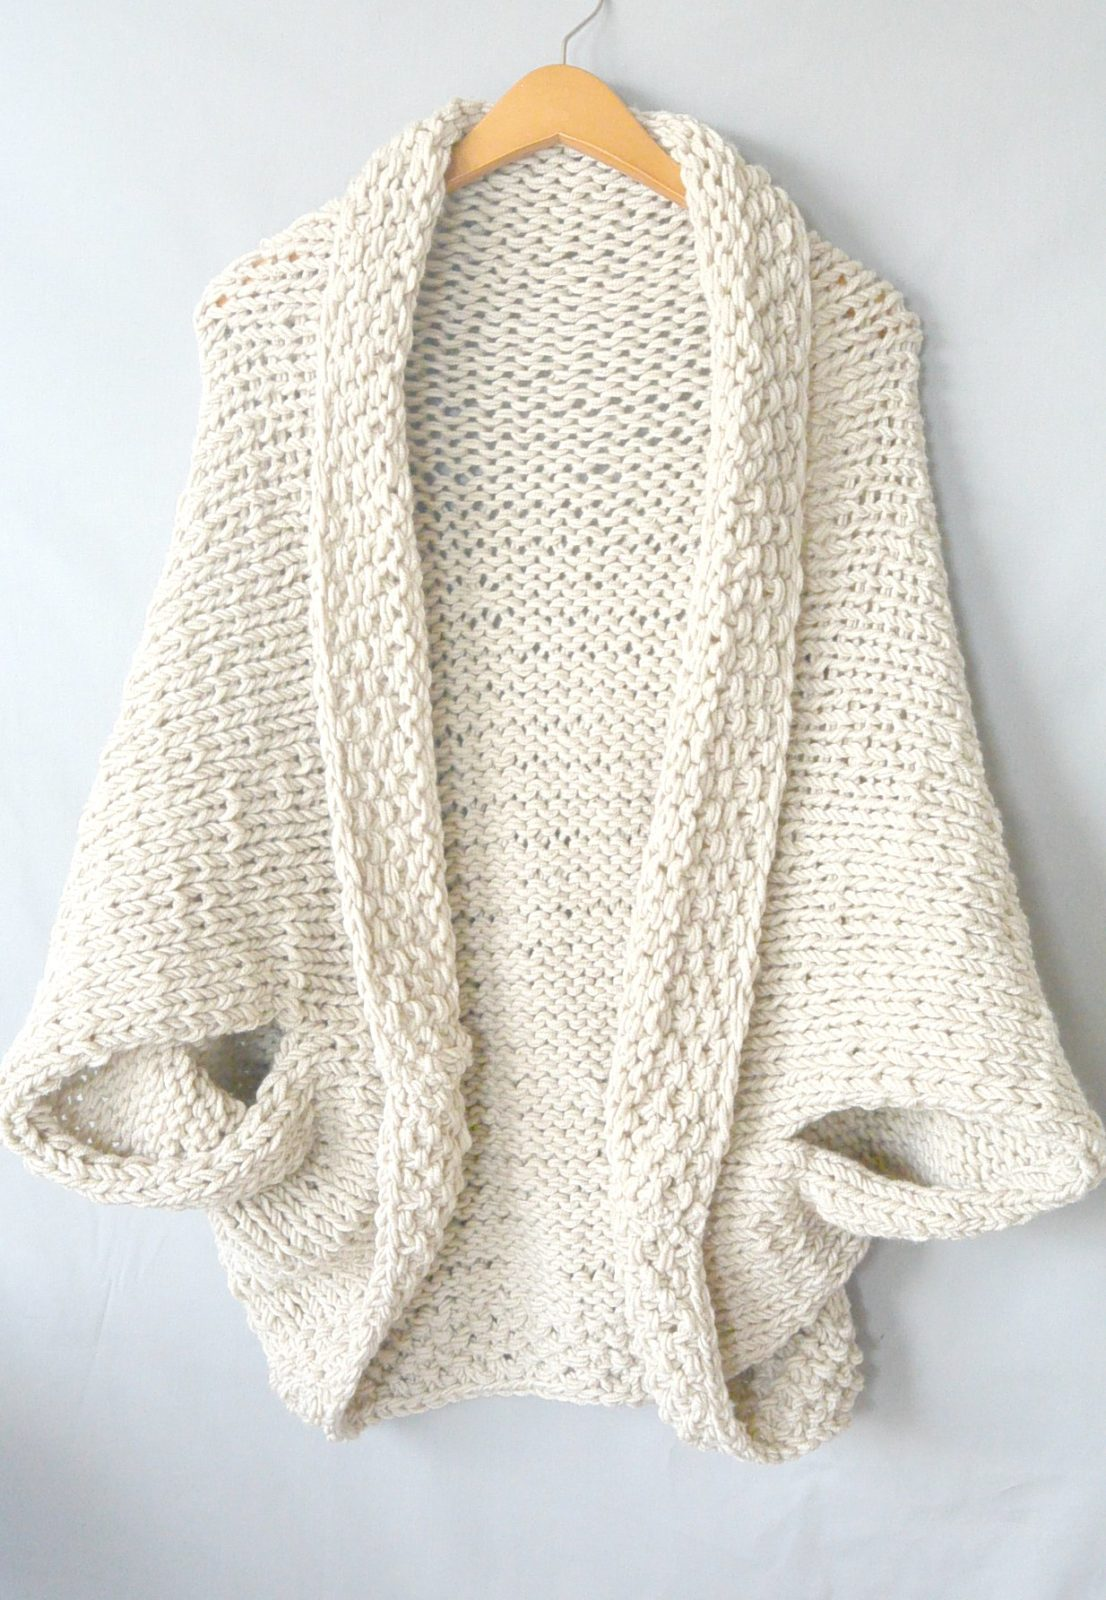 Knitted Jersey Patterns : Easy Knit Blanket Sweater Pattern   Mama In A Stitch